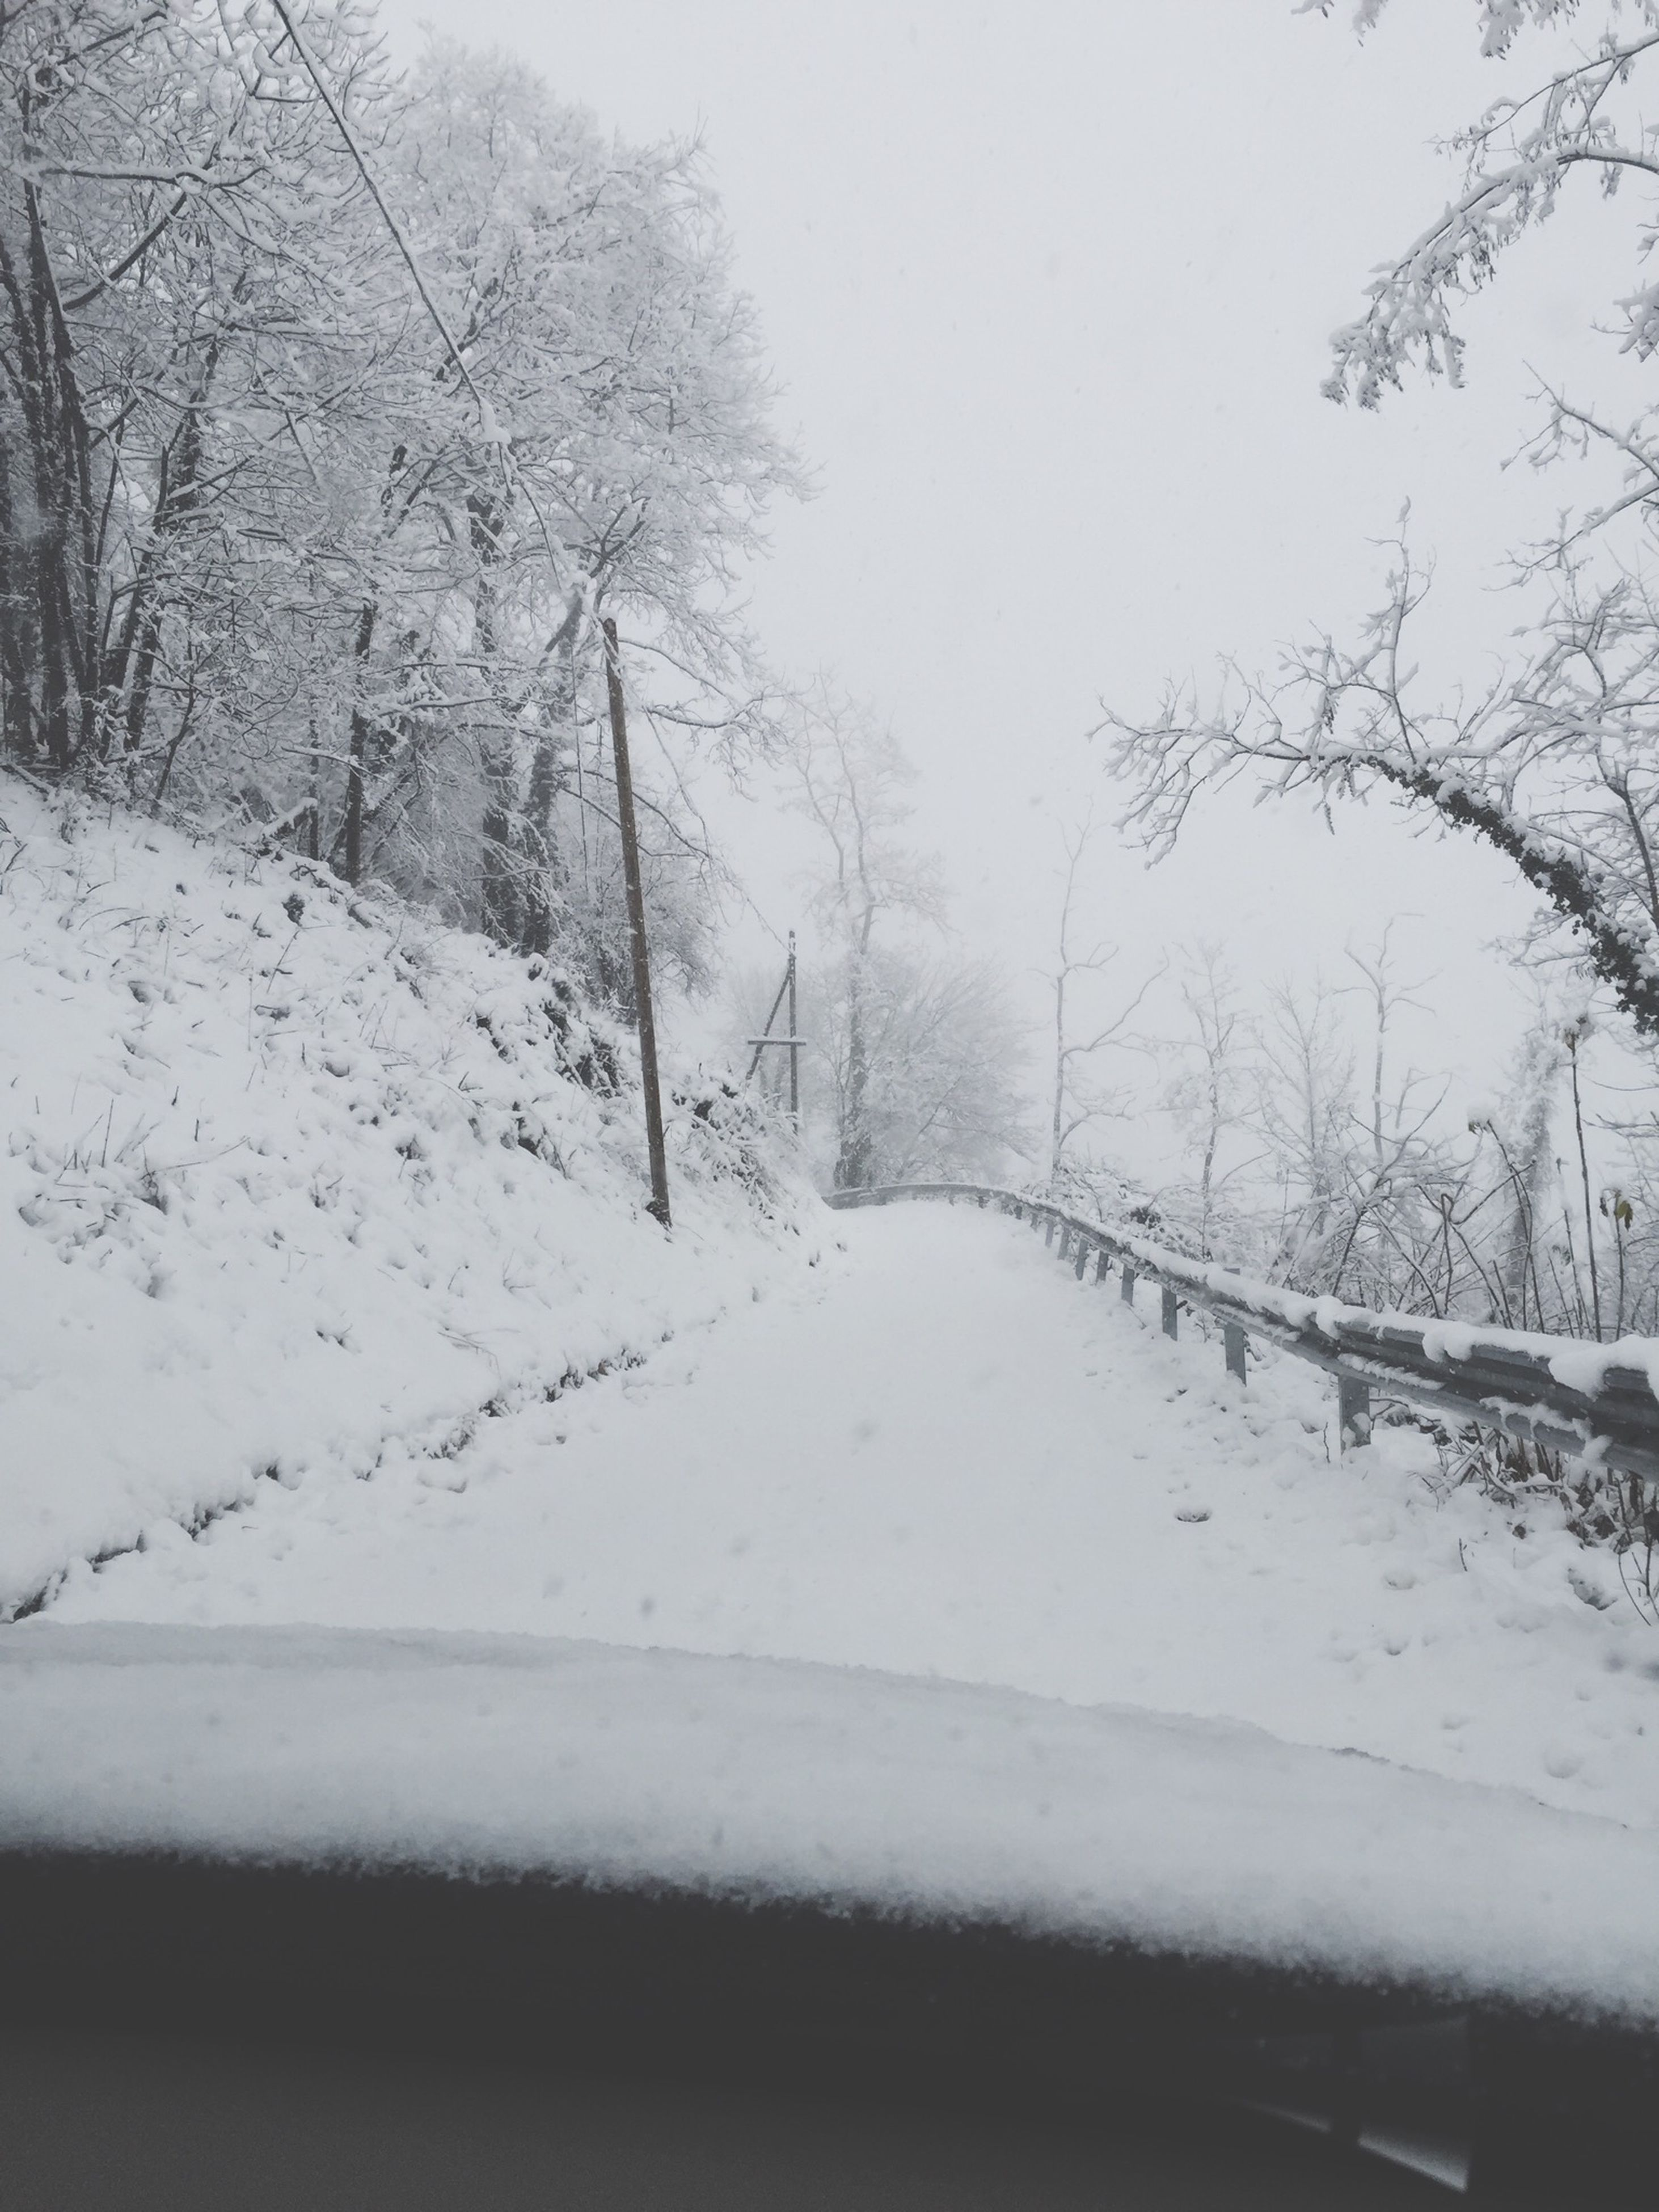 snow, winter, cold temperature, season, weather, transportation, tree, the way forward, road, covering, nature, frozen, bare tree, white color, clear sky, tranquility, tranquil scene, diminishing perspective, beauty in nature, vanishing point